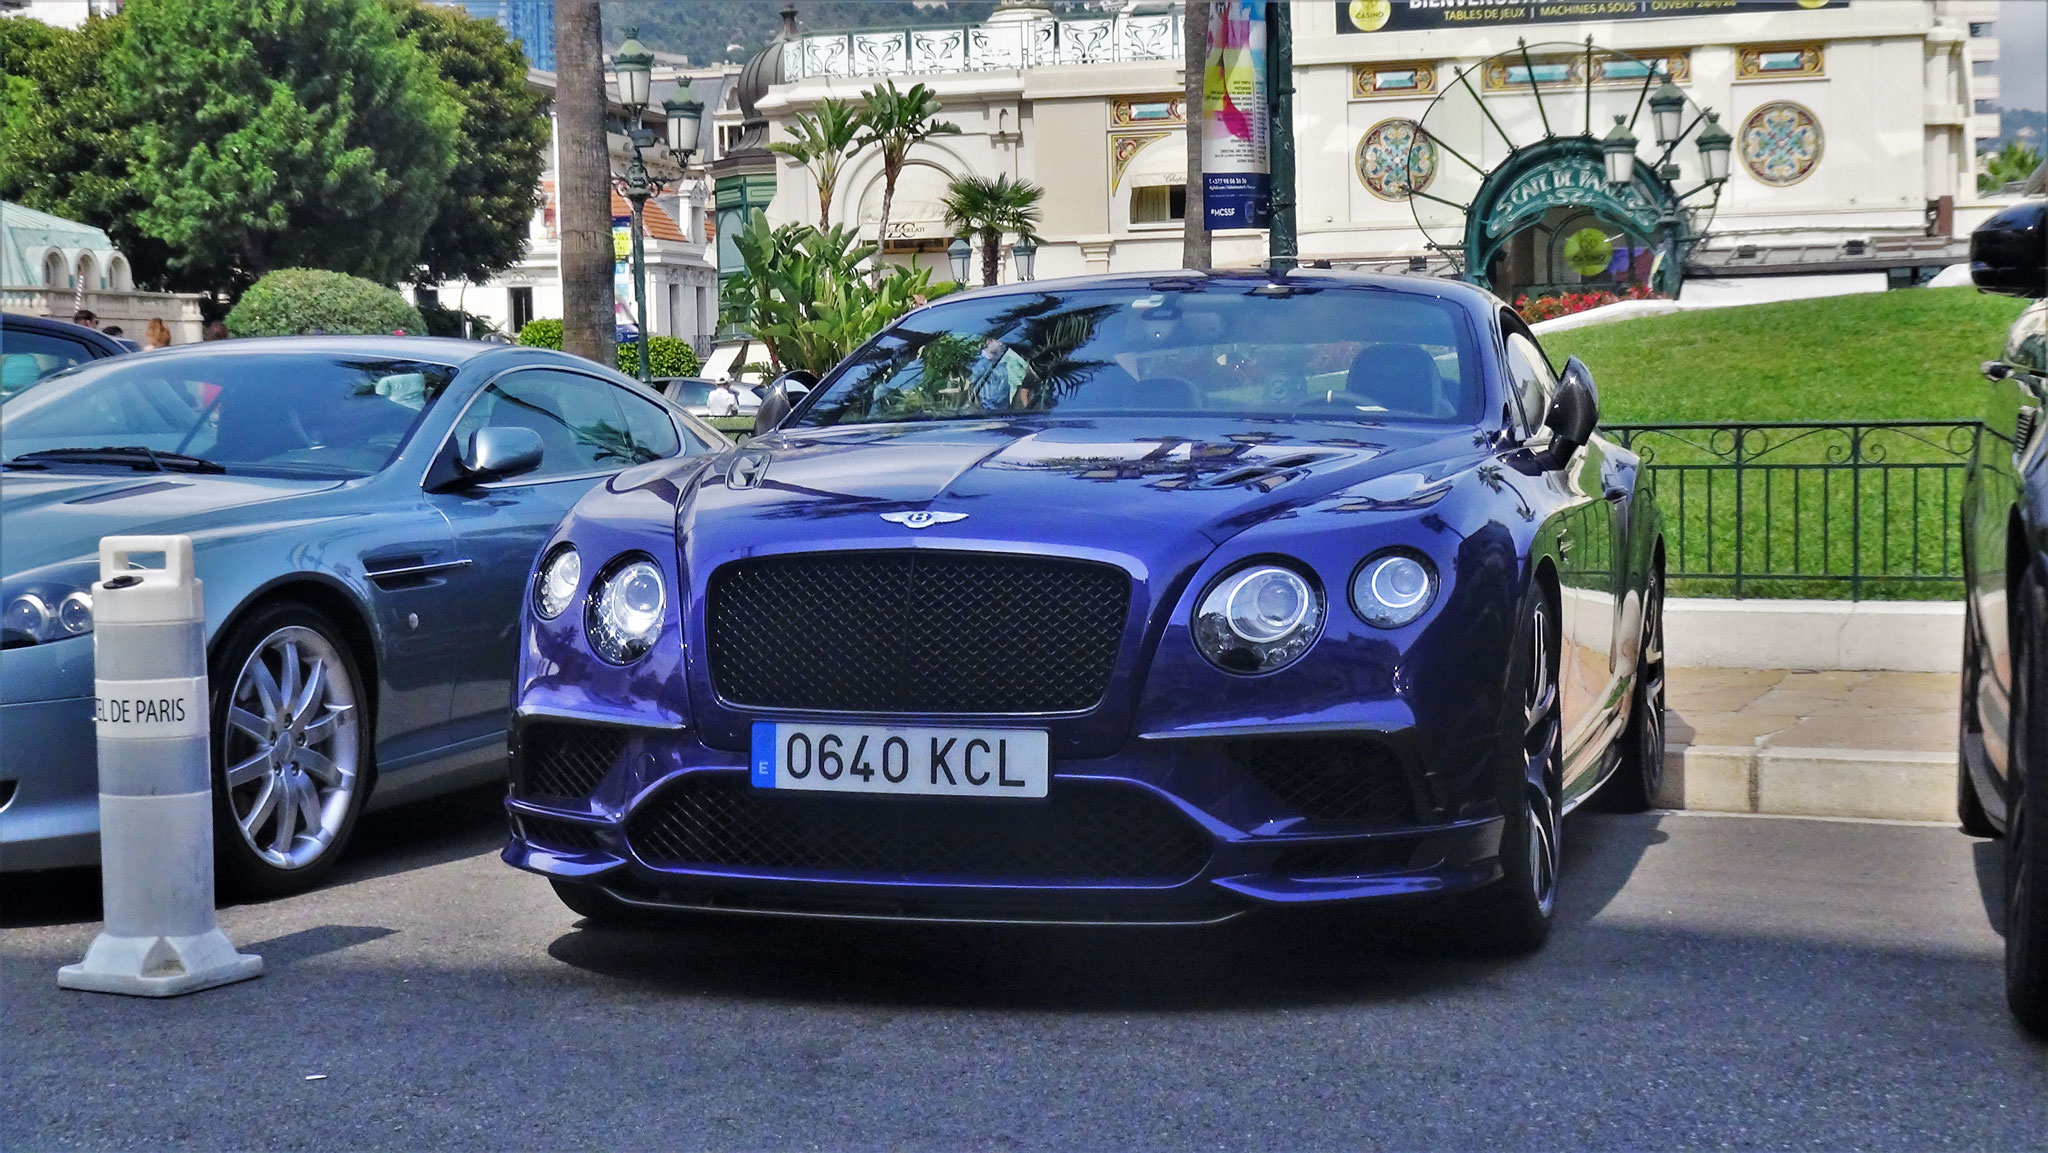 Bentley Continental GTC Supersports - 0640-KCL (ESP)